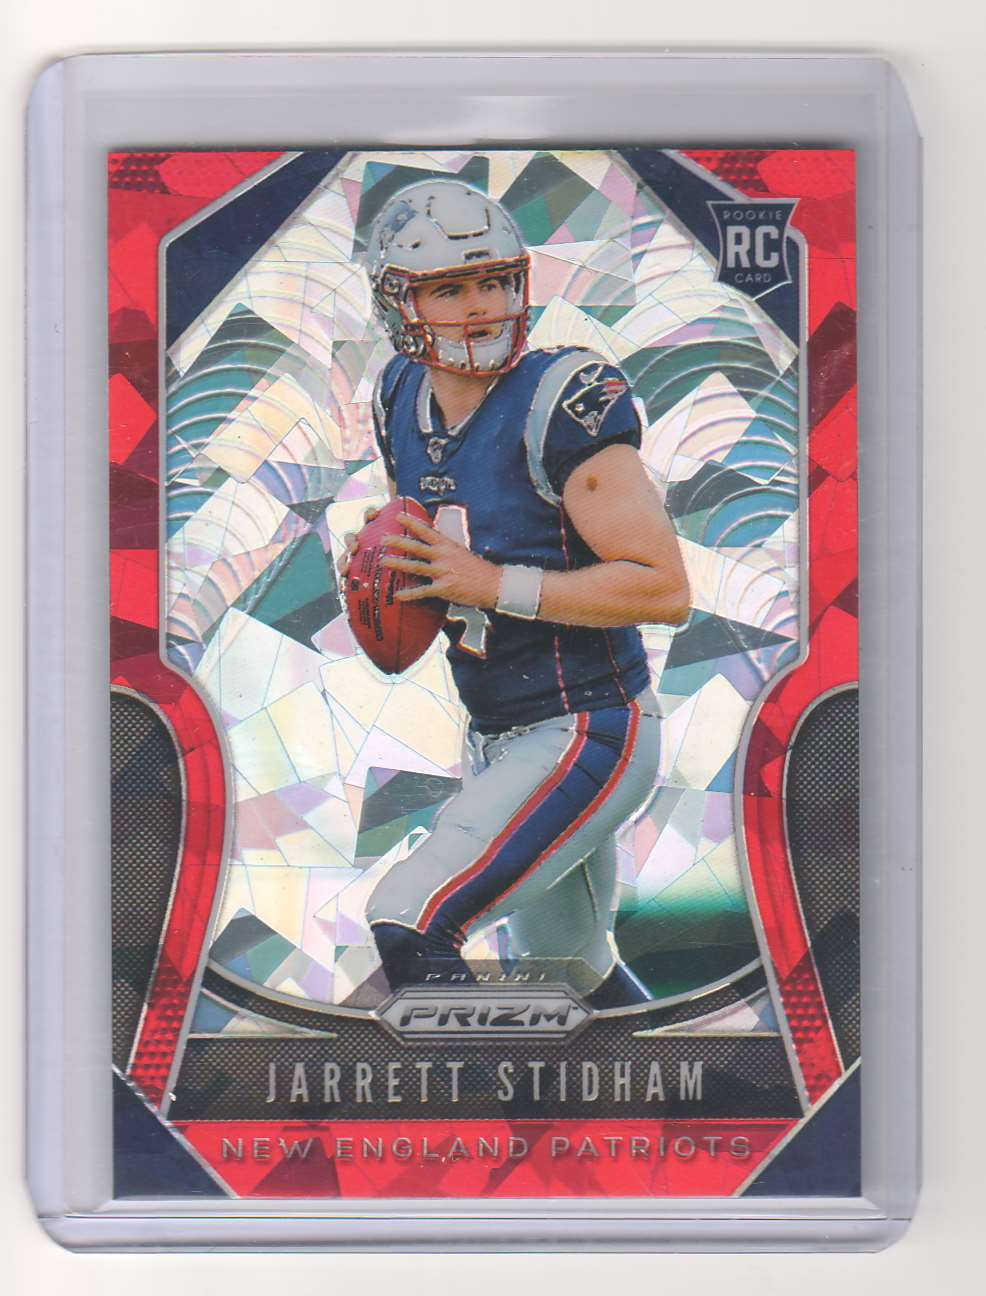 2019 Panini Prizm Jarrett Stidham Red Cracked Ice Prizm RC #308 card front image